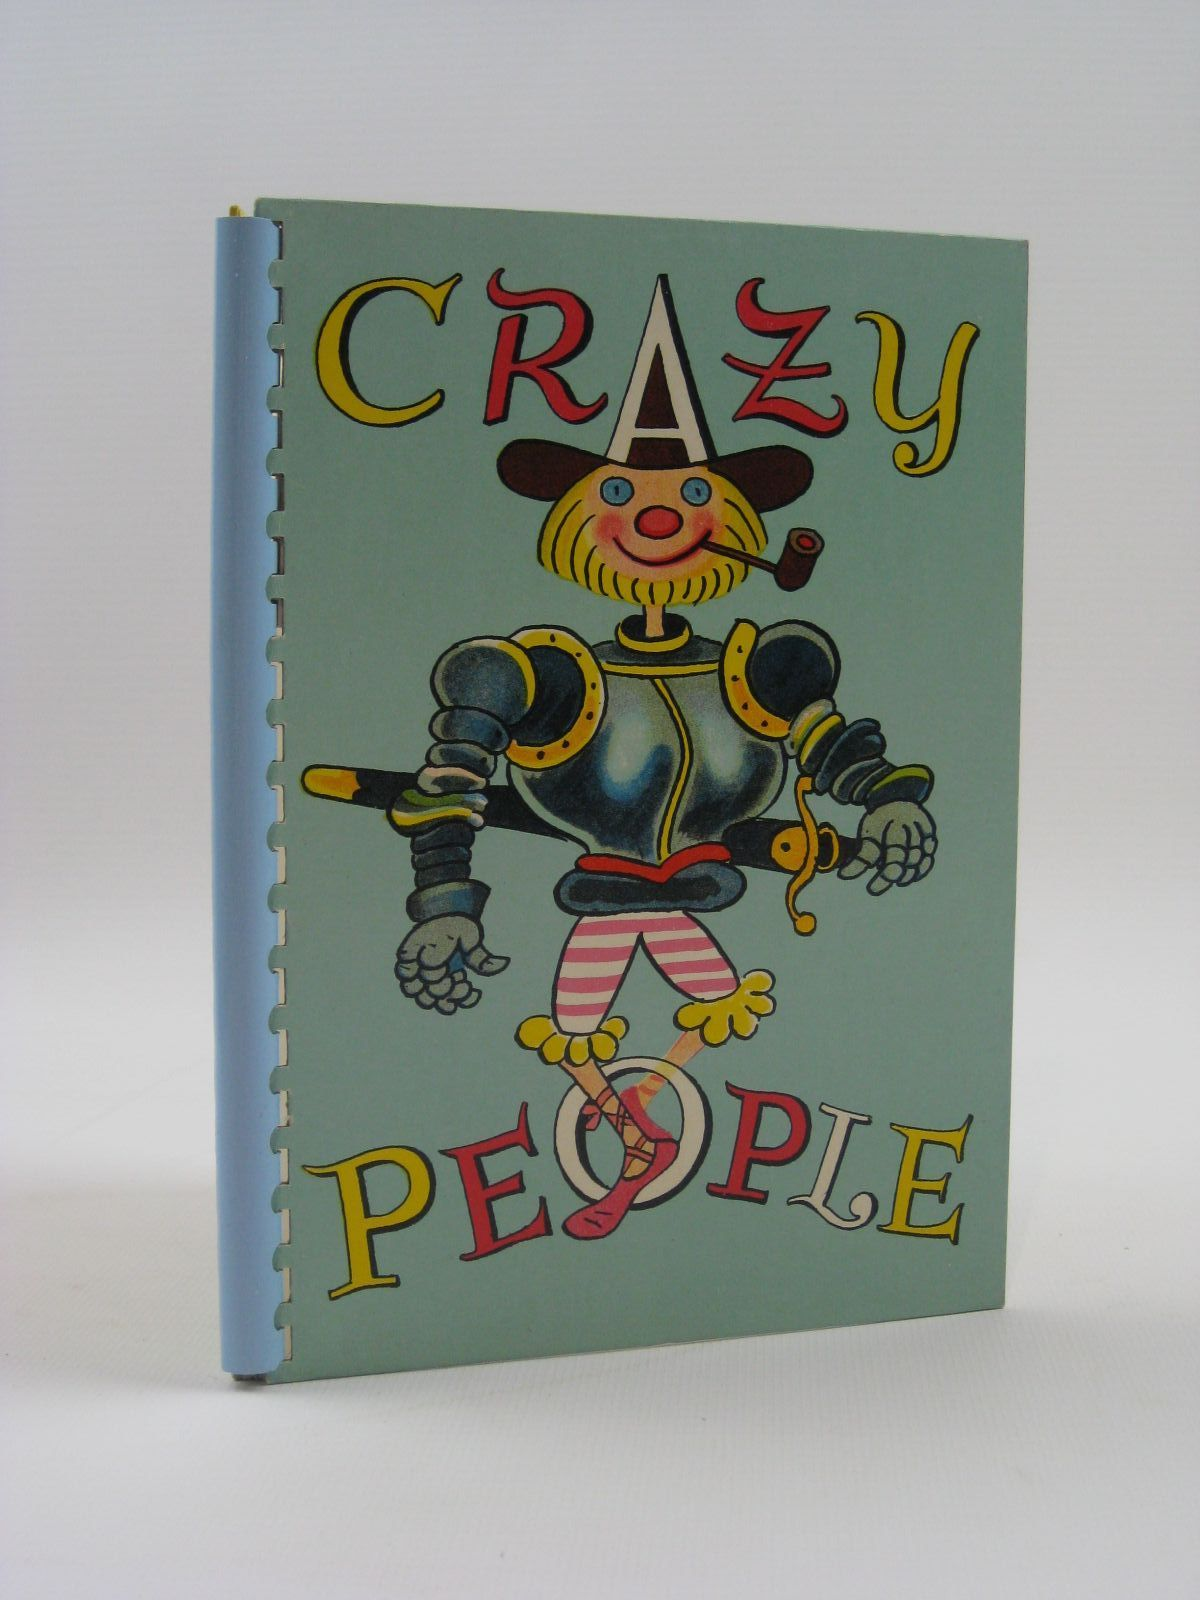 Photo of 8192 CRAZY PEOPLE illustrated by Trier, Walter published by Atrium Press Ltd. (STOCK CODE: 1407044)  for sale by Stella & Rose's Books